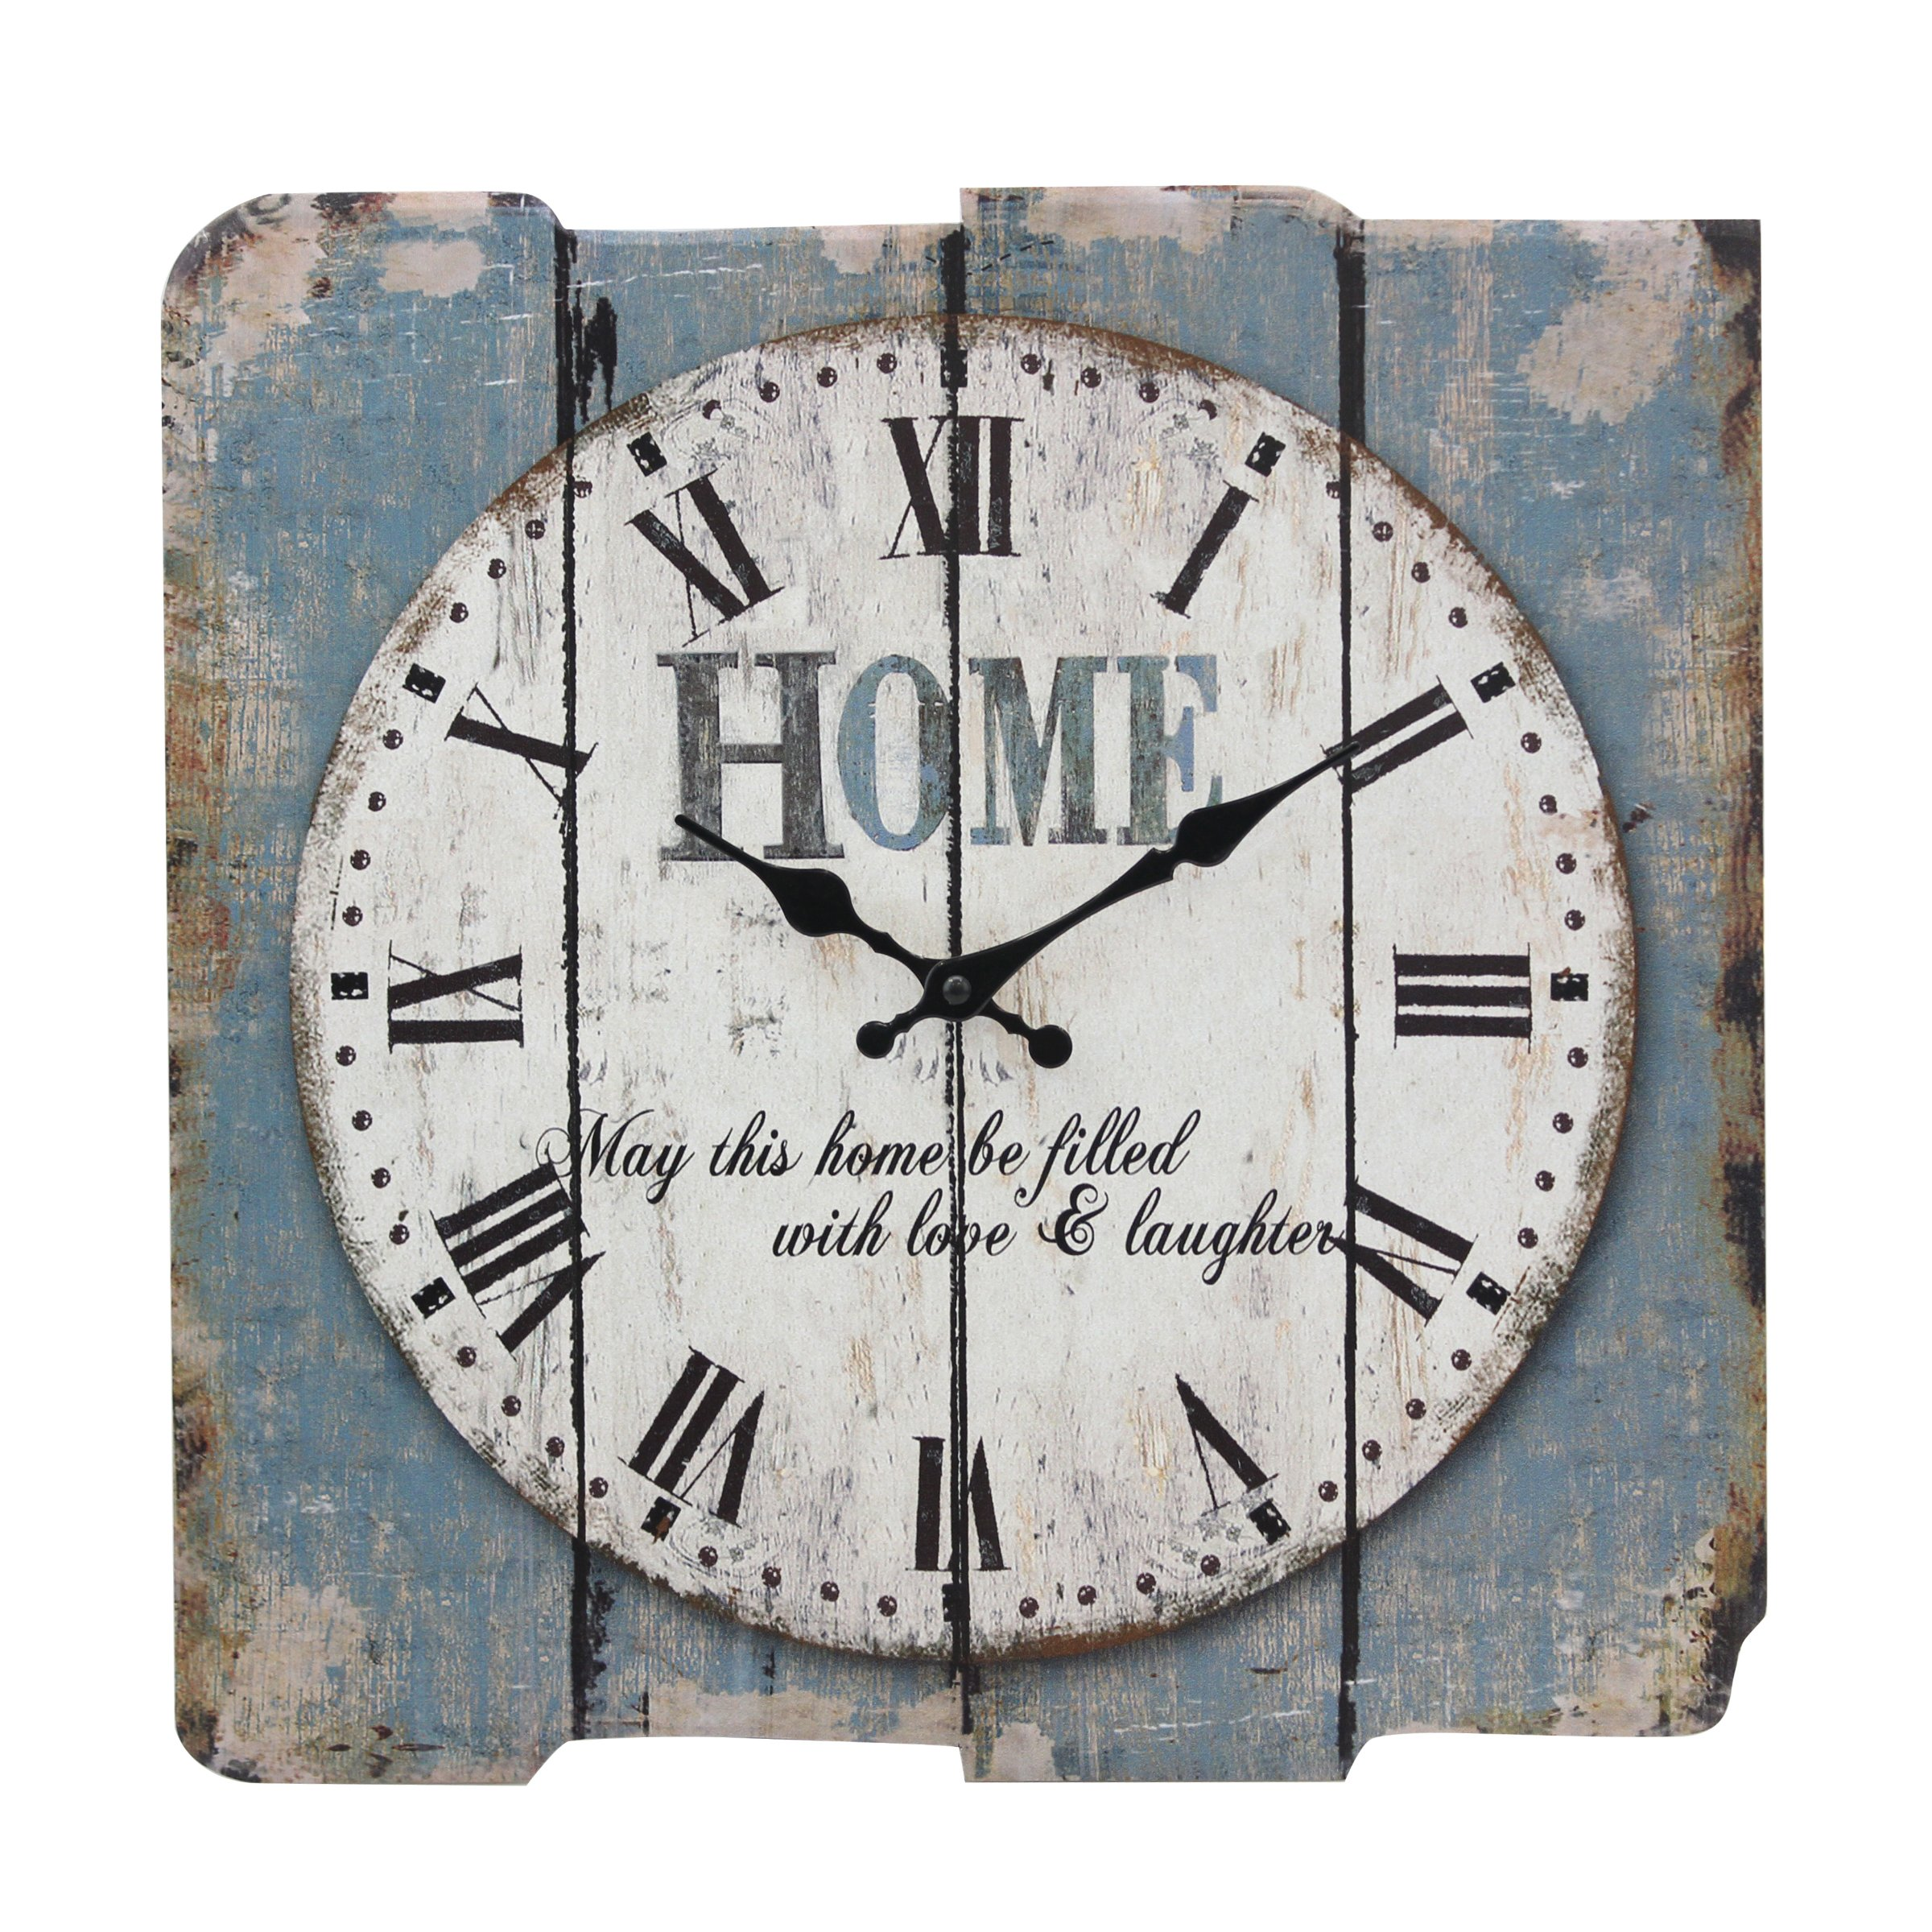 Stonebriar Square 15'' Rustic Farmhouse Worn Blue and White Roman Numeral Wall Clock, Shabby Chic and DIY Home Decor Accents for the Kitchen, Living Room, and Bedroom, Battery Operated by Stonebriar